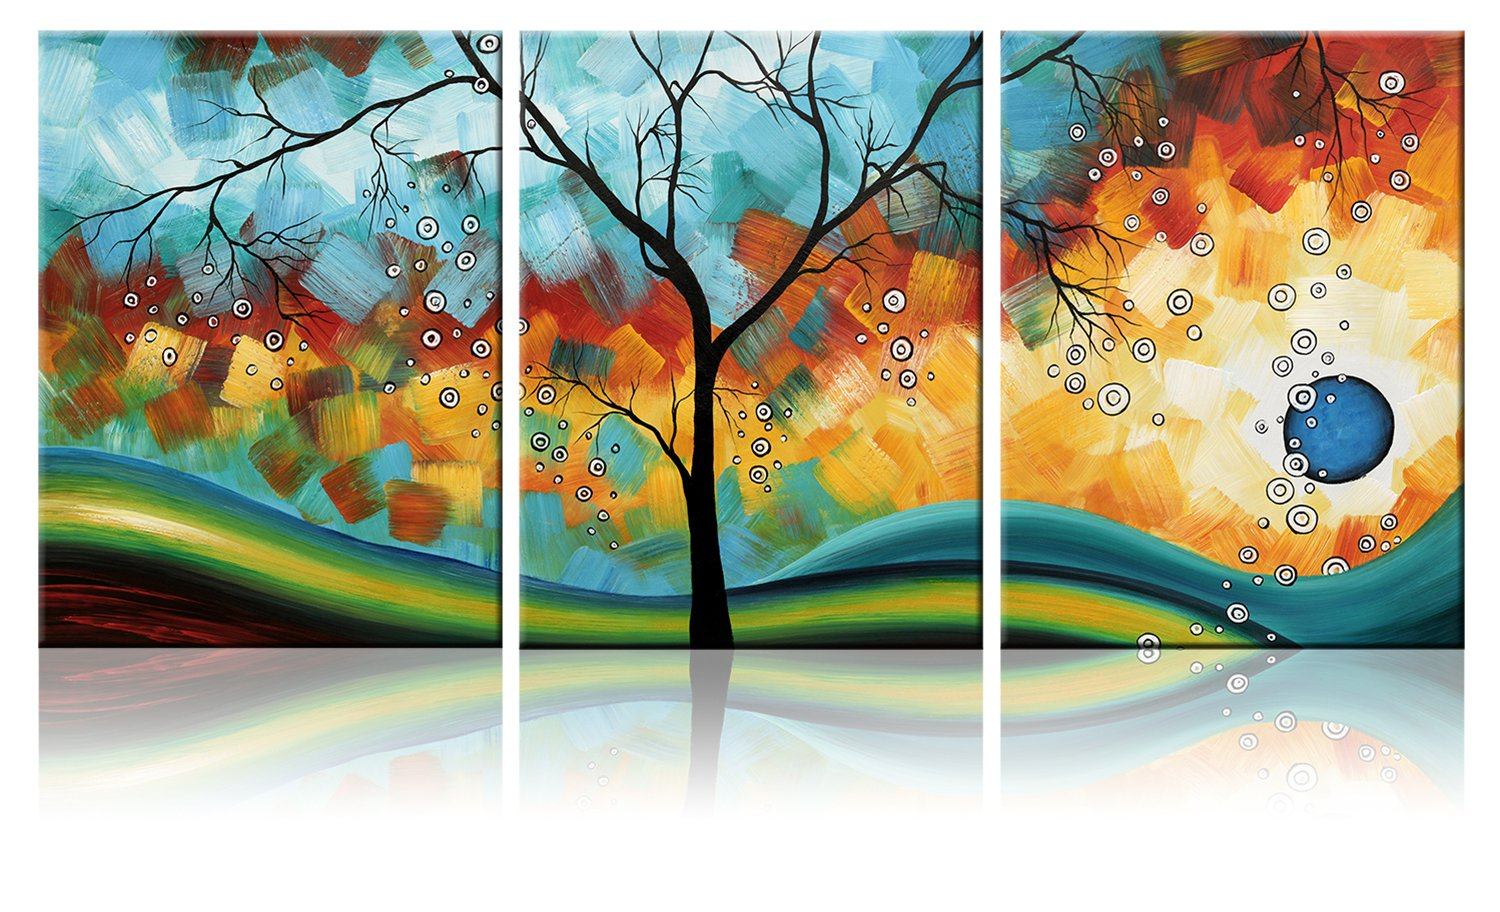 Ode-Rin Art - Modern Abstract Landscape Wall Art Tree 3 Pieces Artwork Blue Framed Giclee Canvas Prints for Living Room Home Decor, Ready to Hang - 36x16 Inch